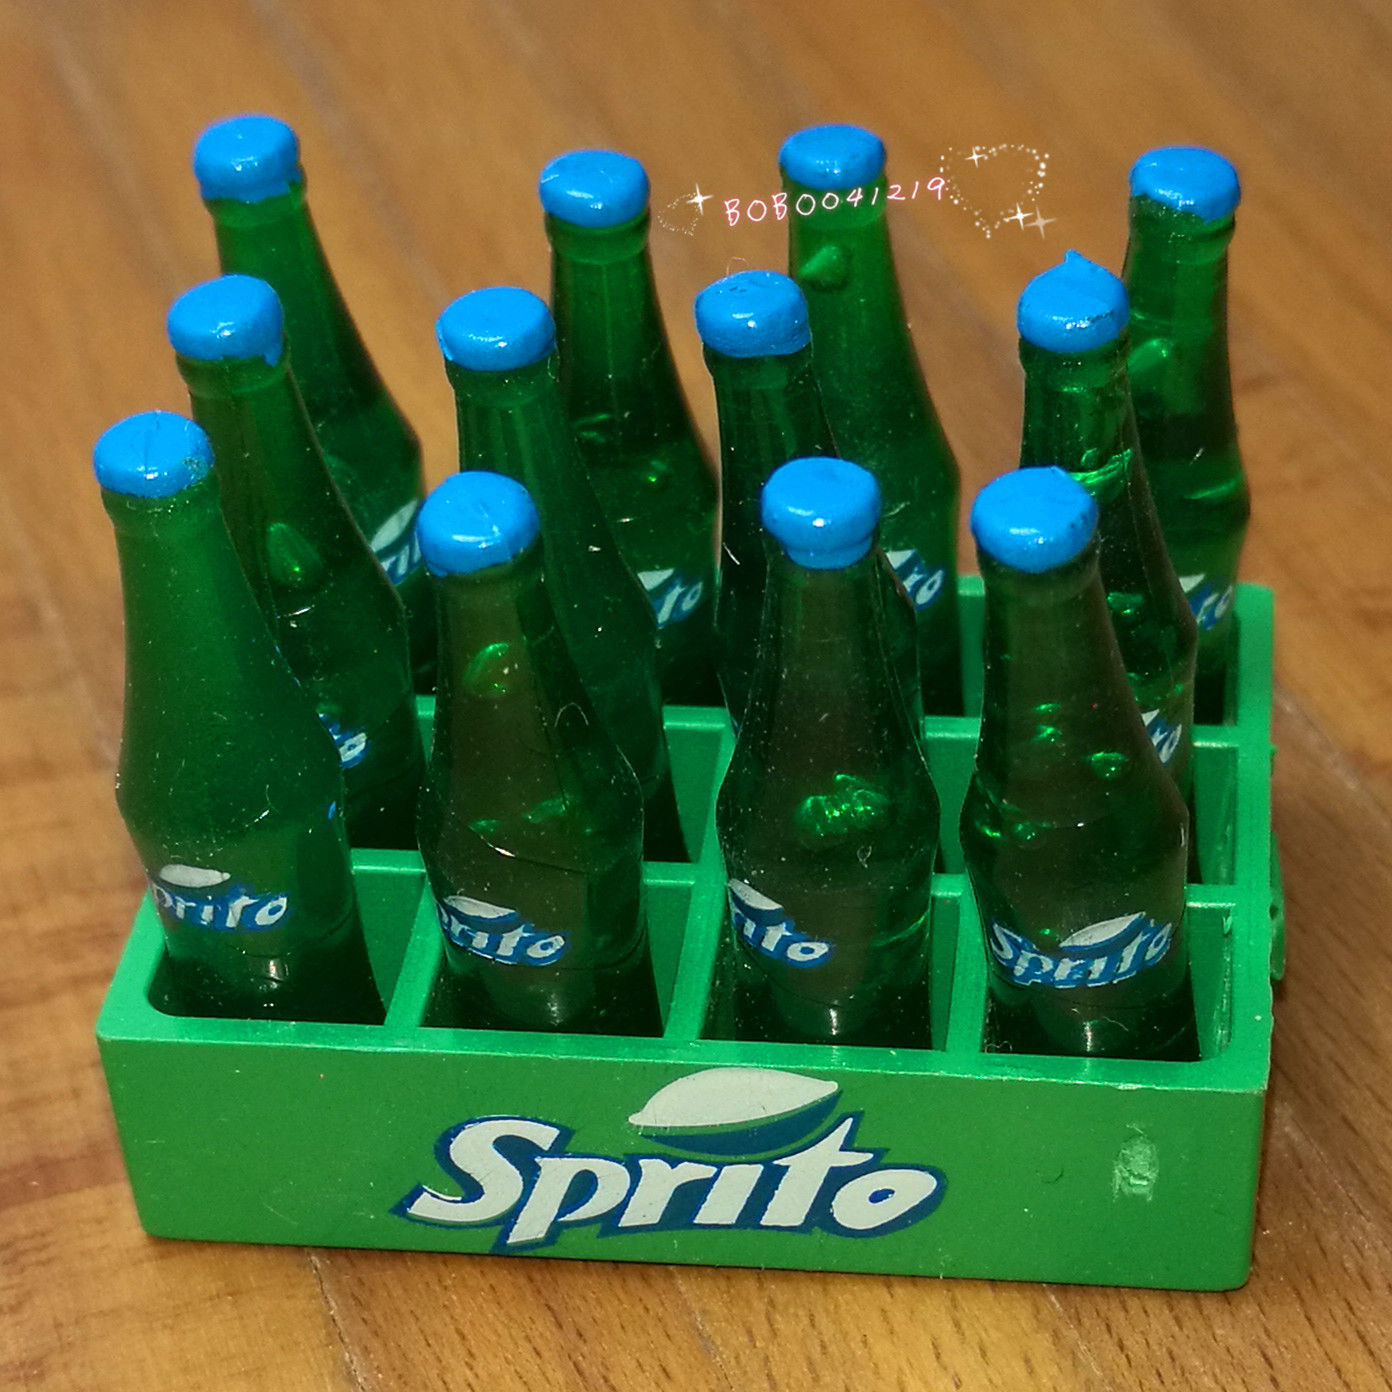 Dollhouse Miniature 1:12 Toy A Tray Of Cola Drink Bottles Length 4cm SPO544